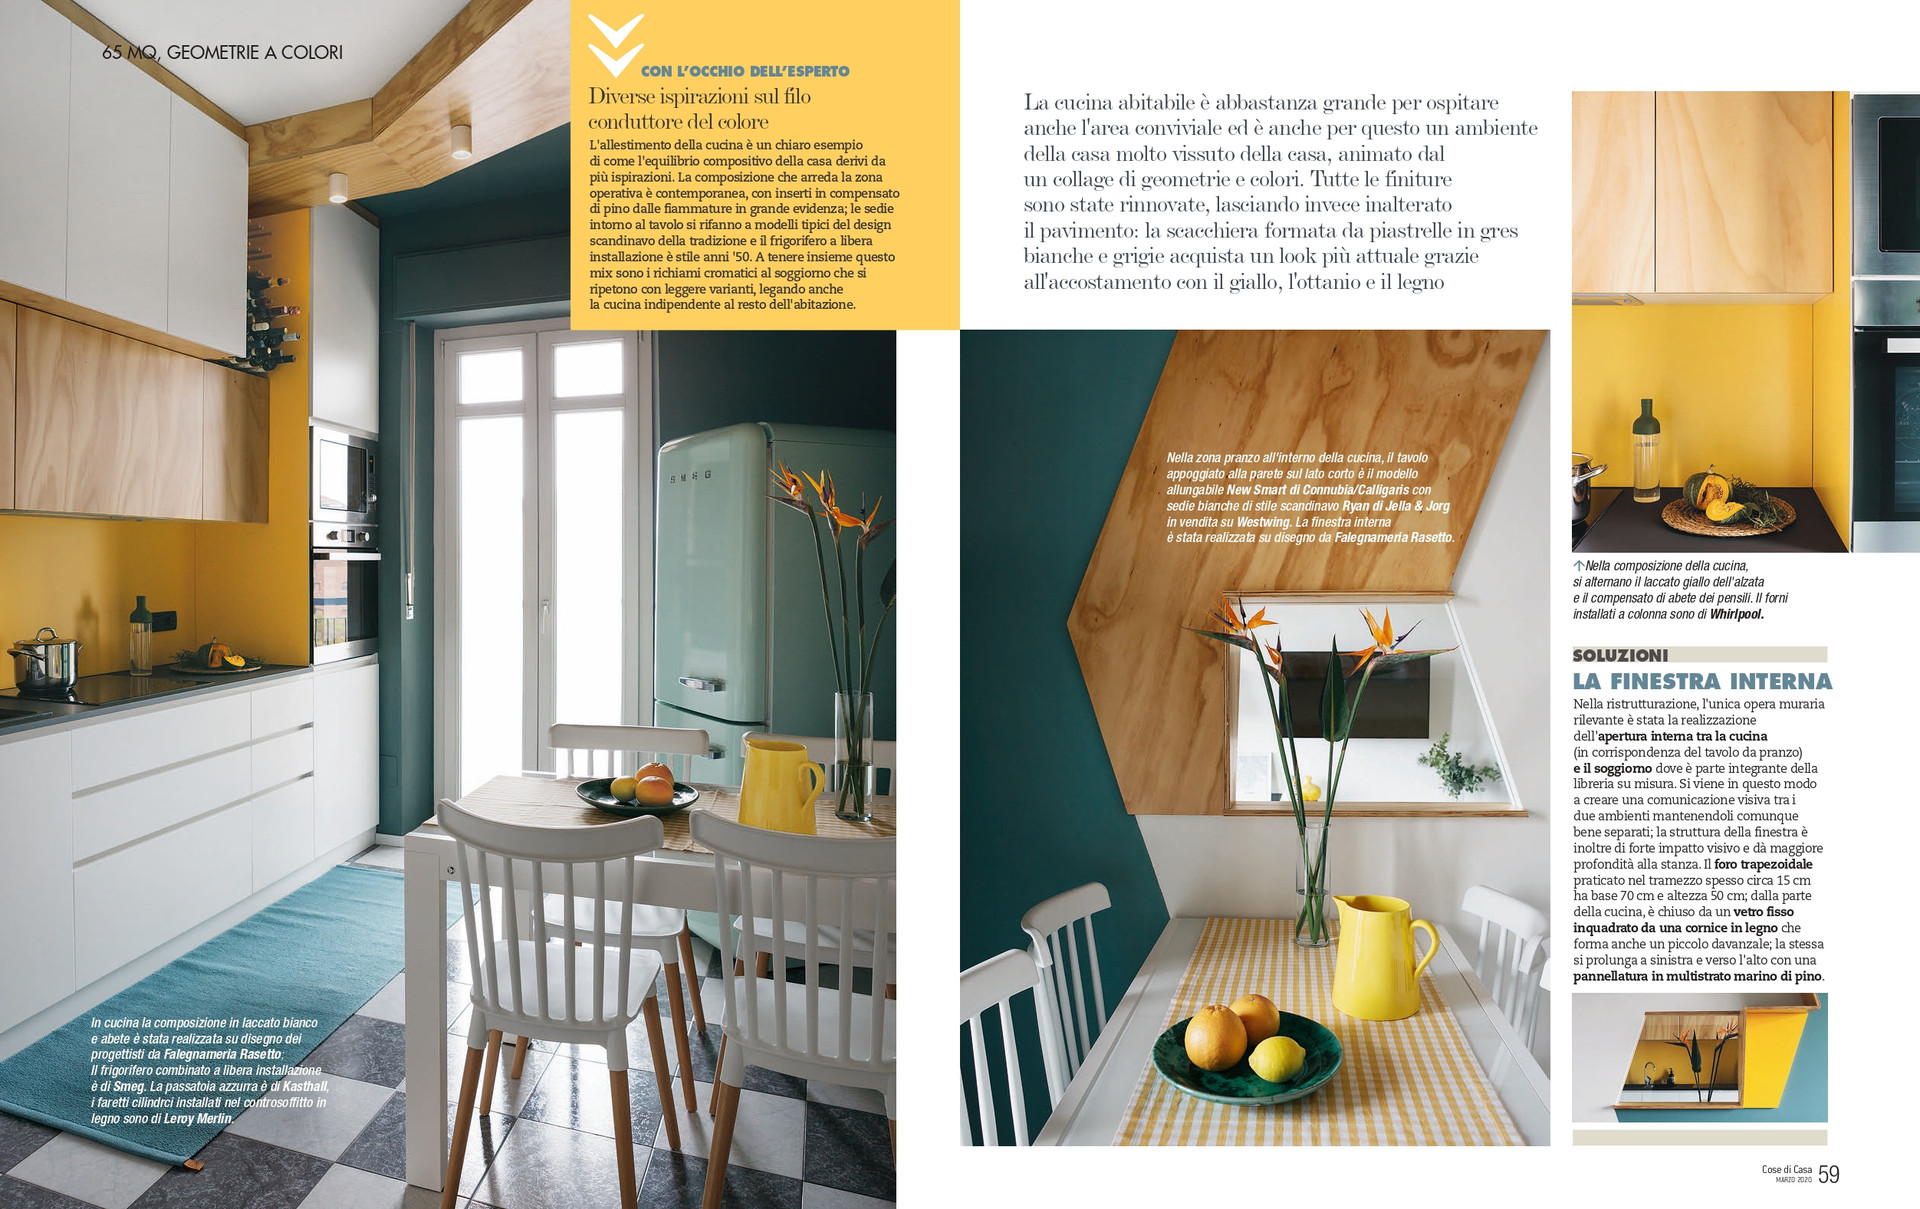 NUOVE GEOMETRIE A COLORI_pages-to-jpg-00